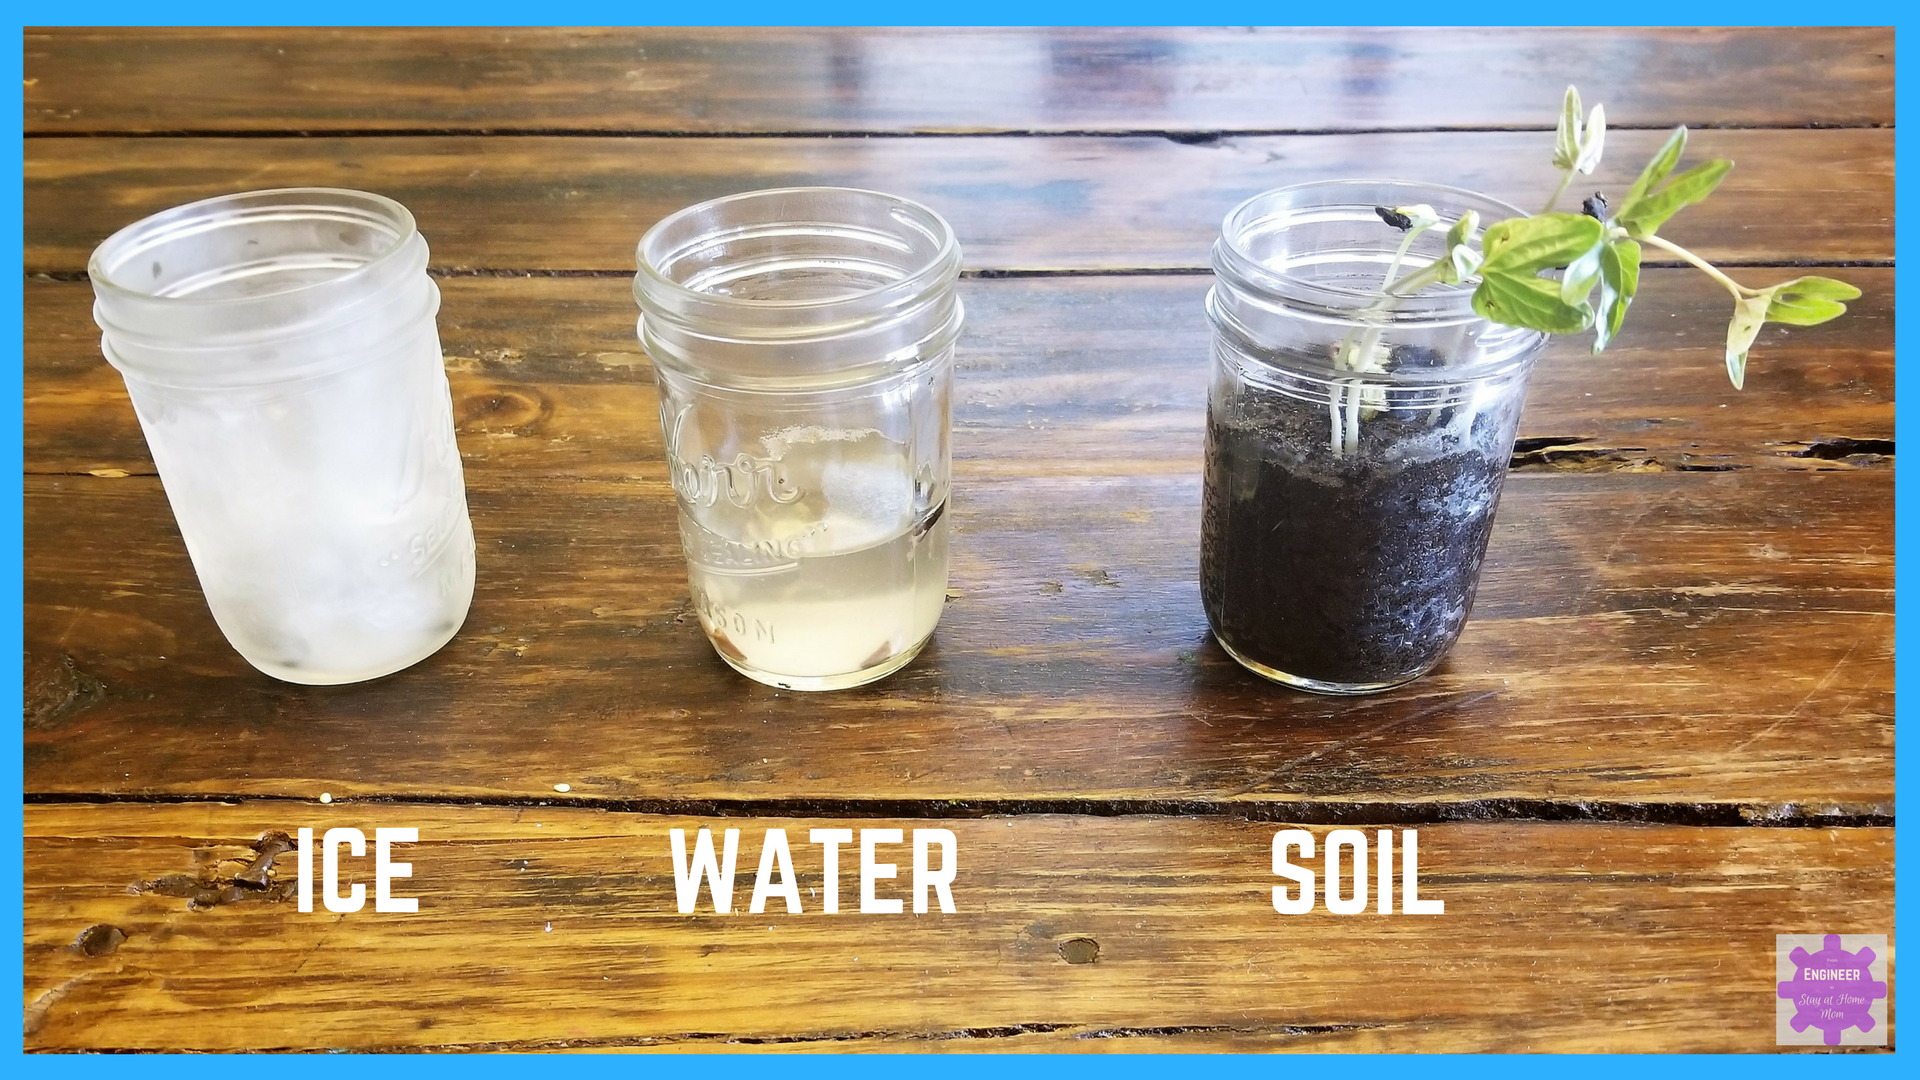 Seeds are planted in jars of ice, water, and soil.